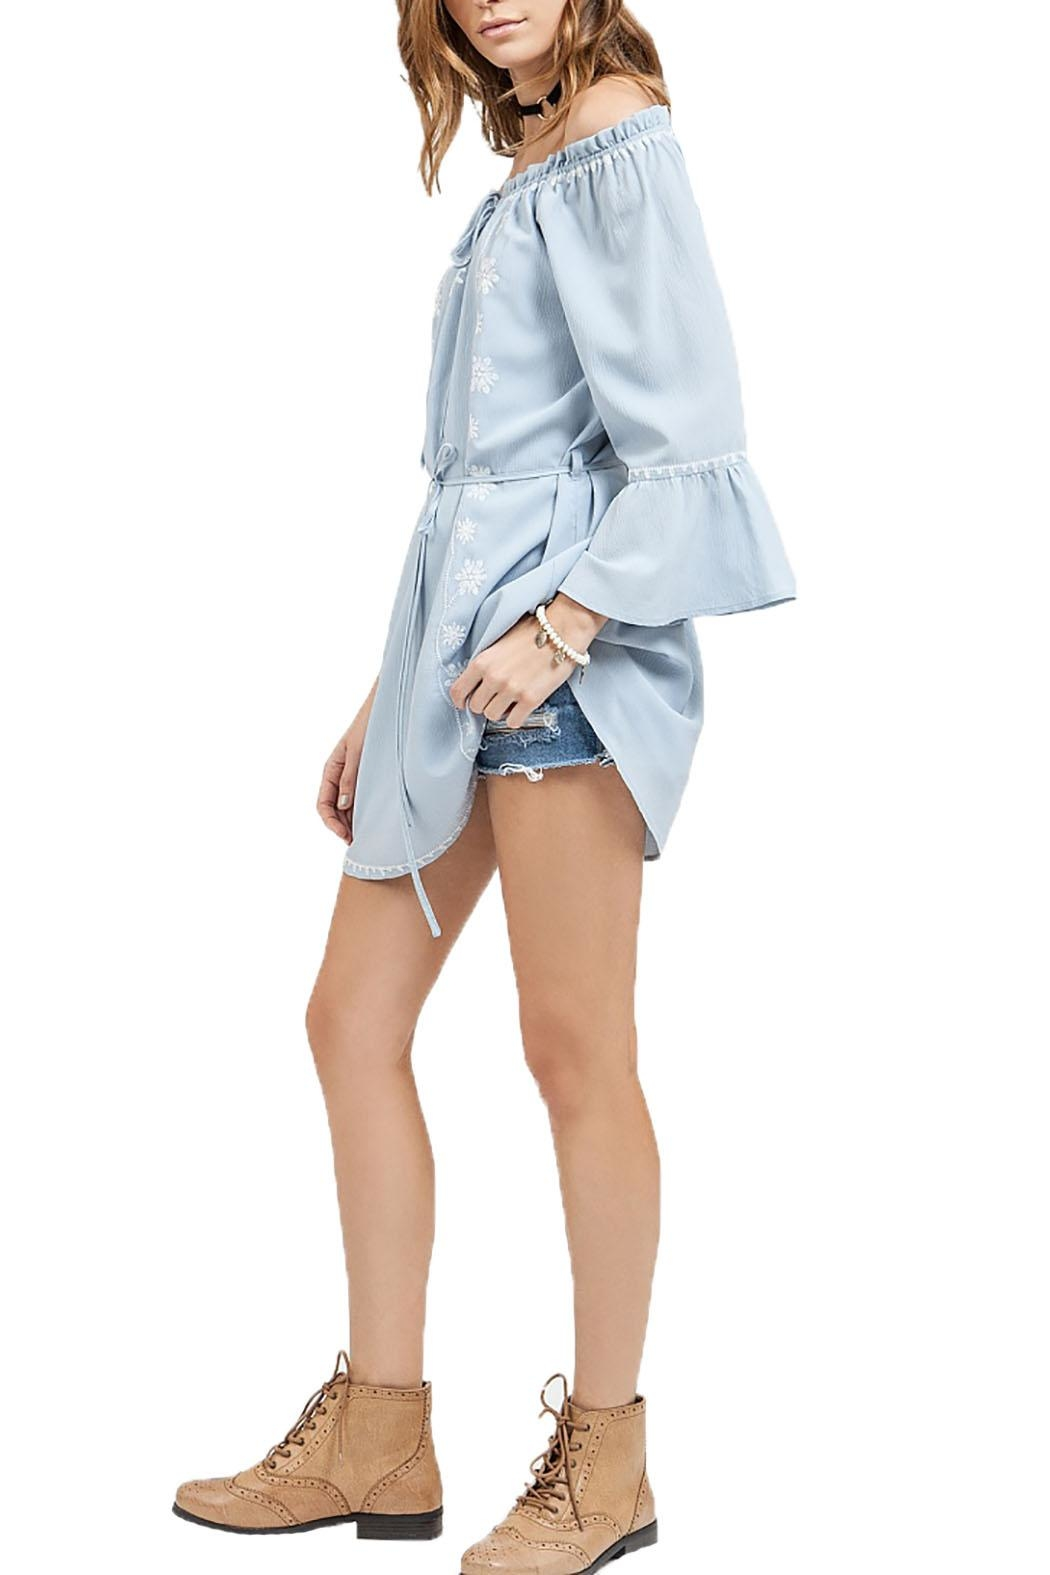 Blu Pepper Off Shoulder Dress - Side Cropped Image